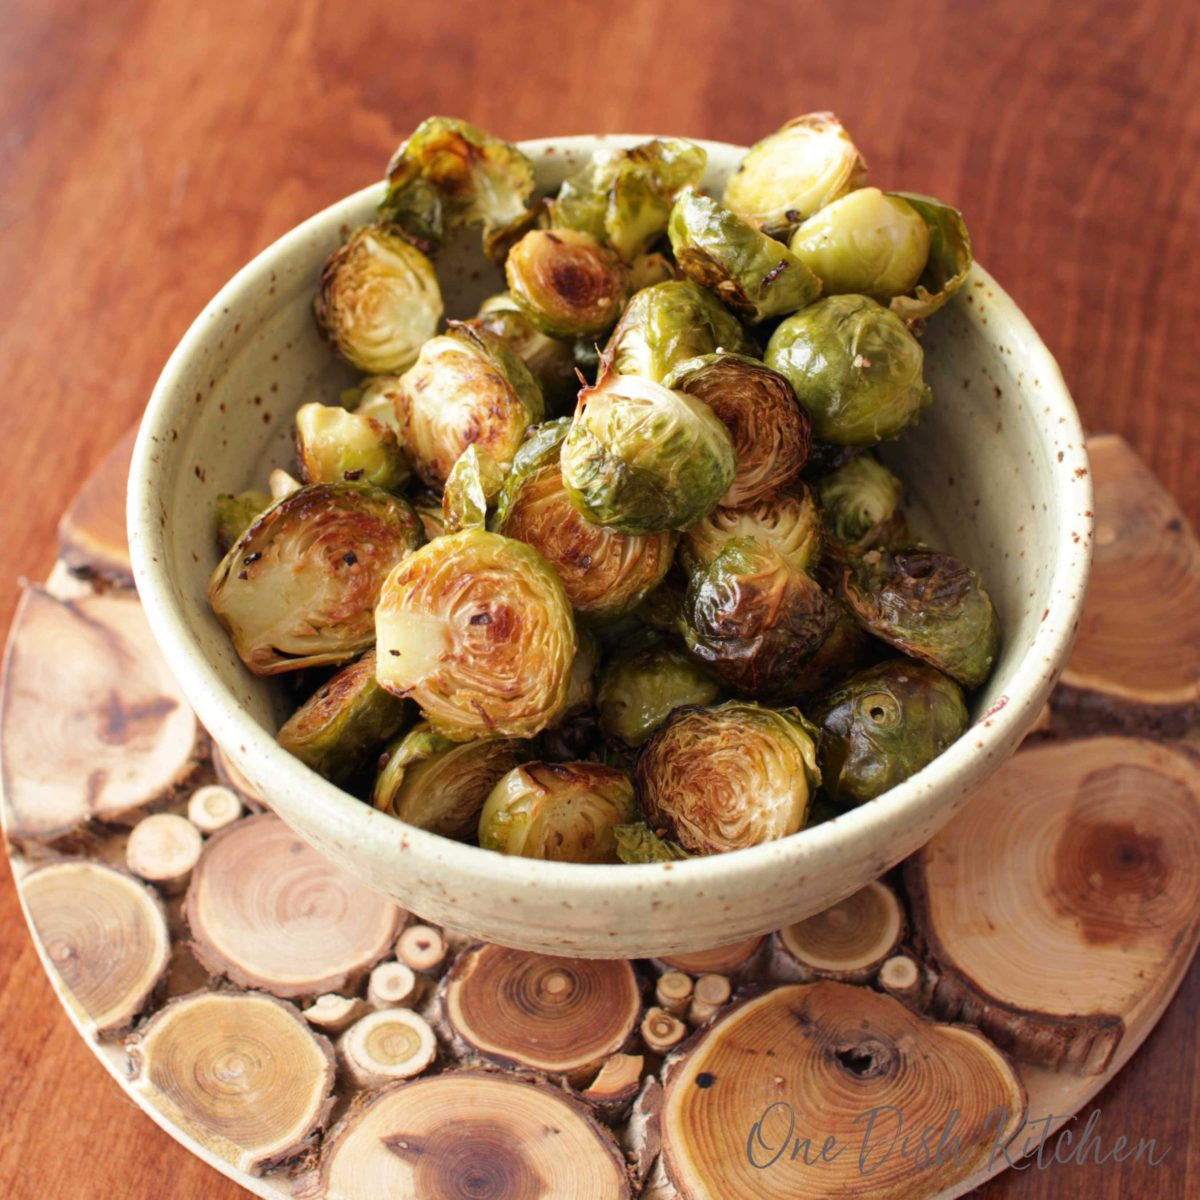 a yellow bowl filled with roasted brussels sprouts.